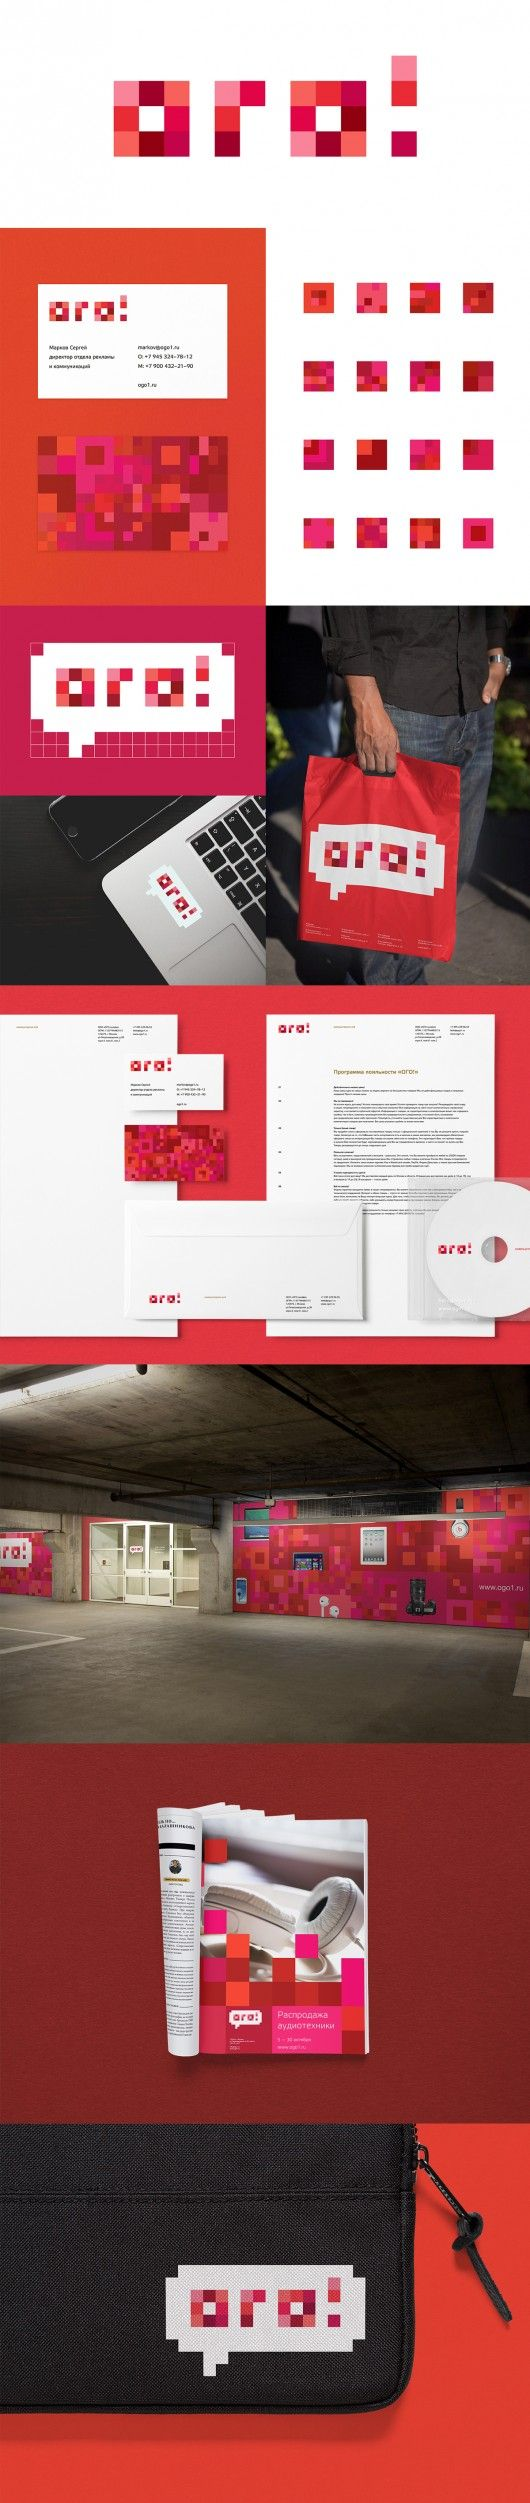 Corporate brand identities A showcase of 40